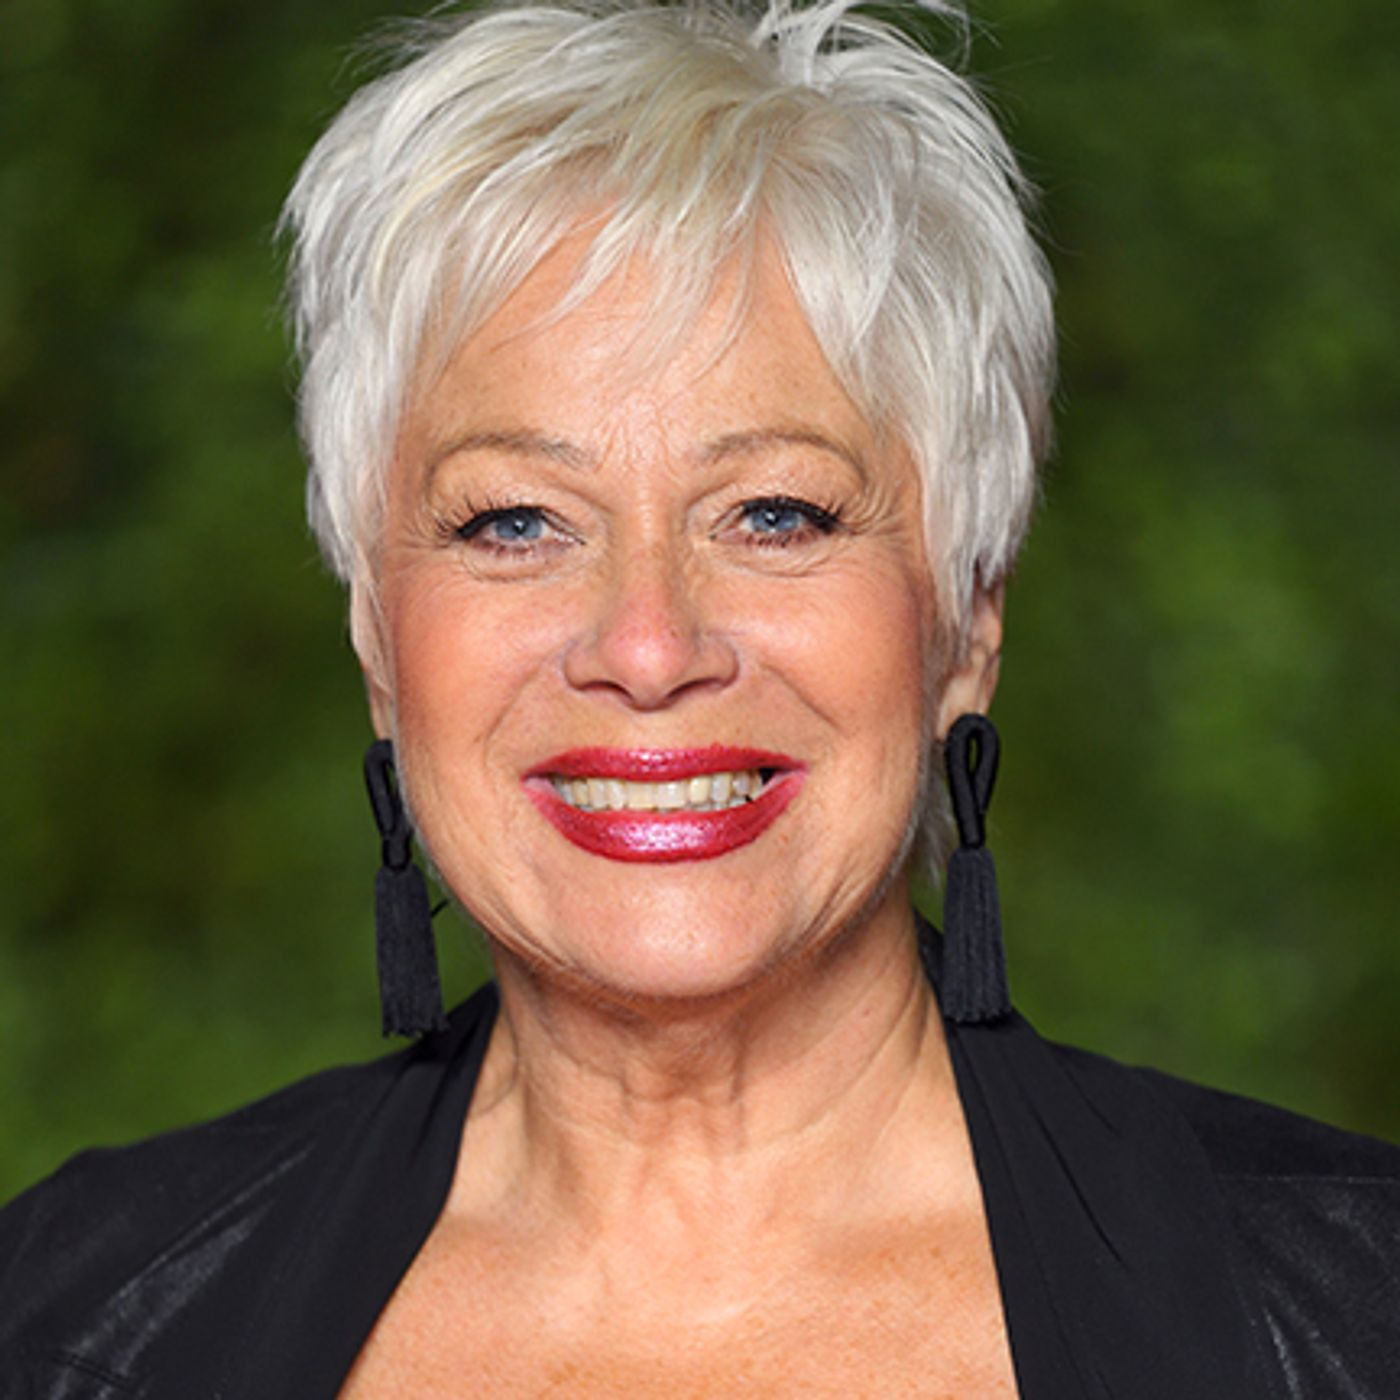 No Really, I'm Fine - Denise Welch talks about life with her 'unwelcome visitor'